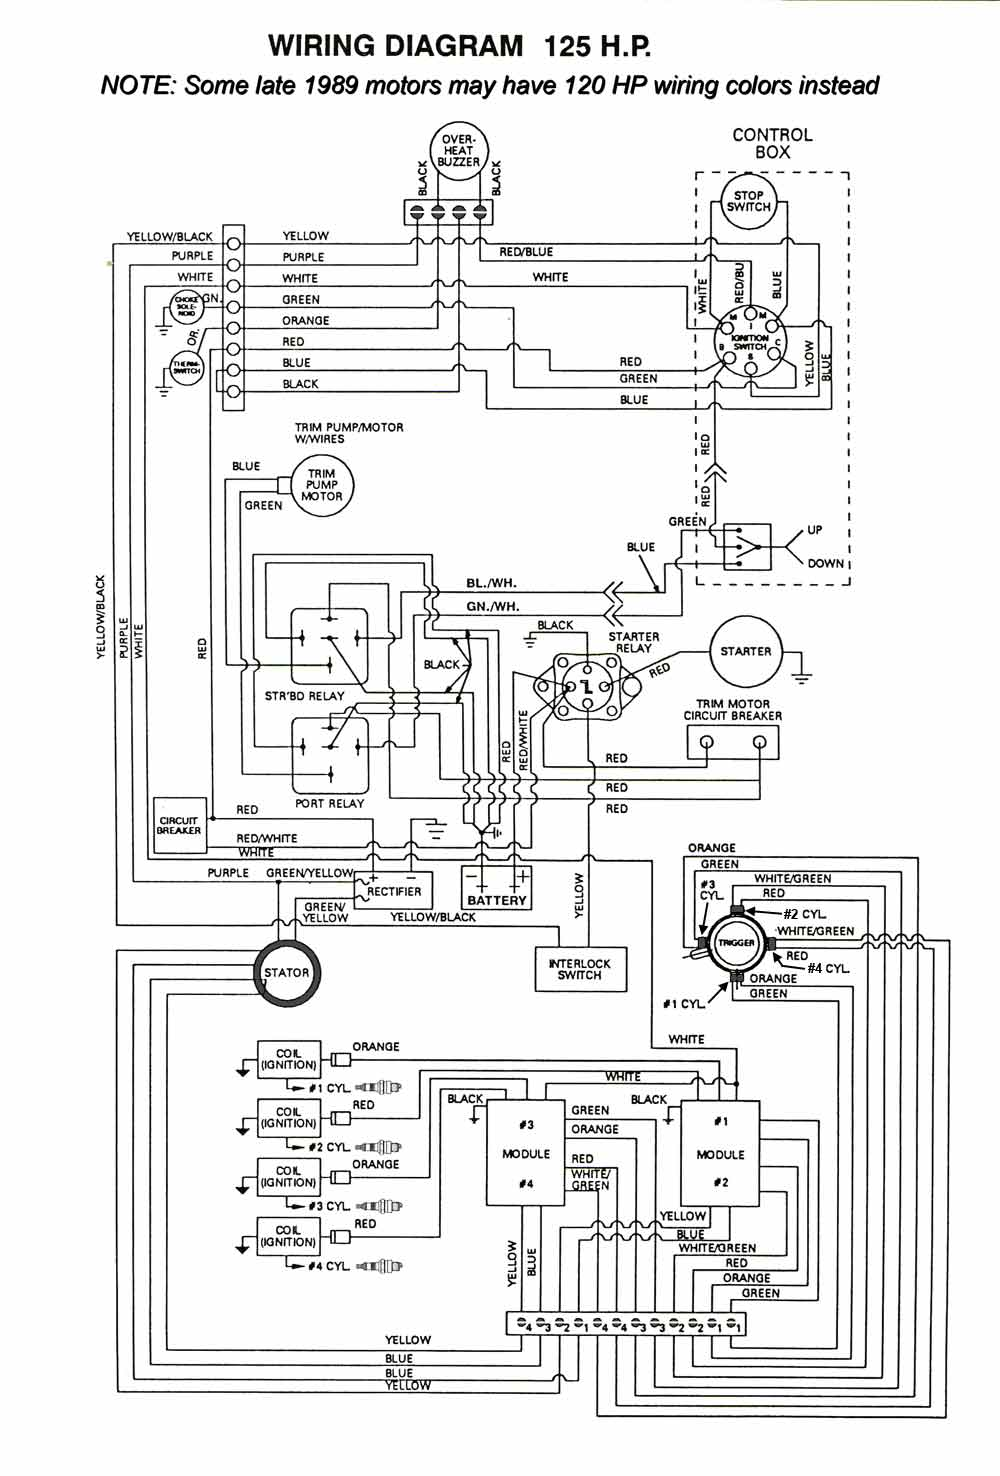 Tremendous Johnson 50 Hp Wiring Diagram Free Picture Wiring Diagram Wiring Cloud Geisbieswglorg